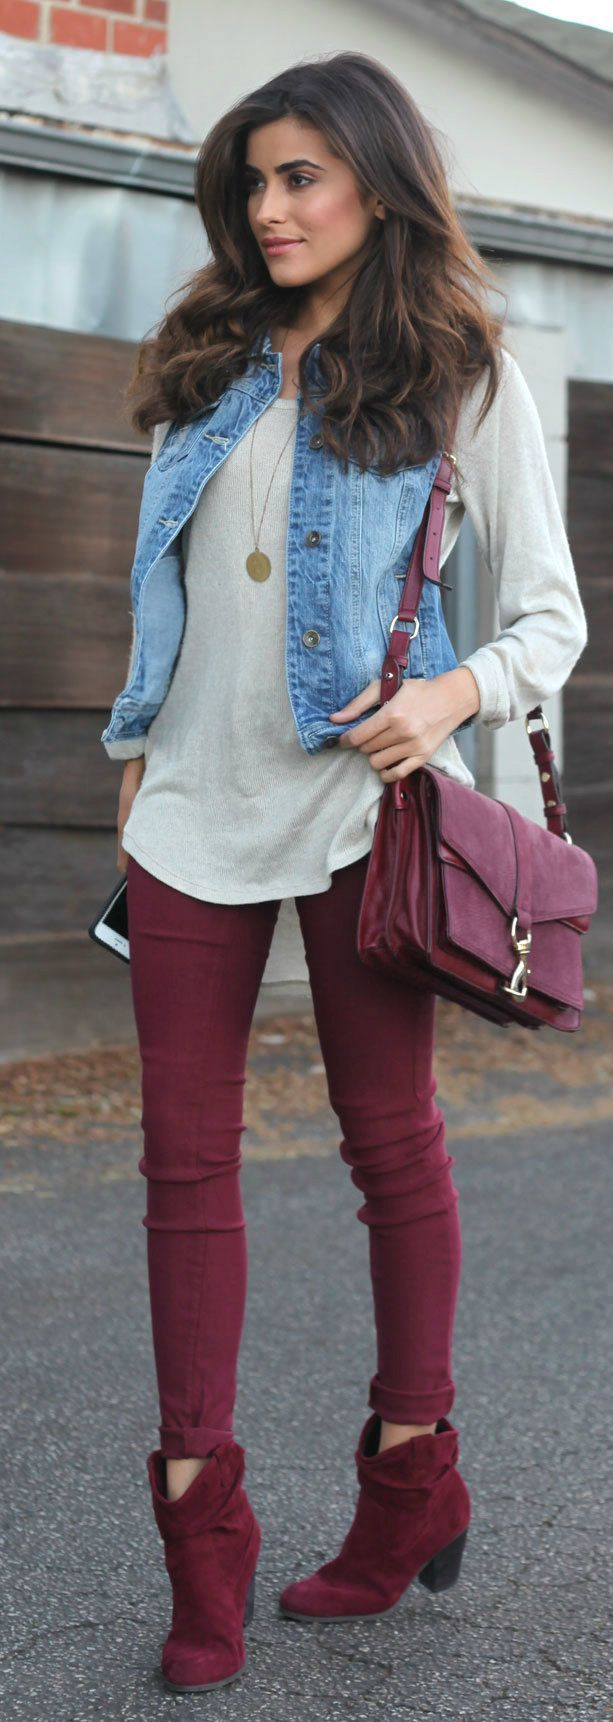 Street Style Fall Ideas 2014. Burgundy jeans, boots and bag.